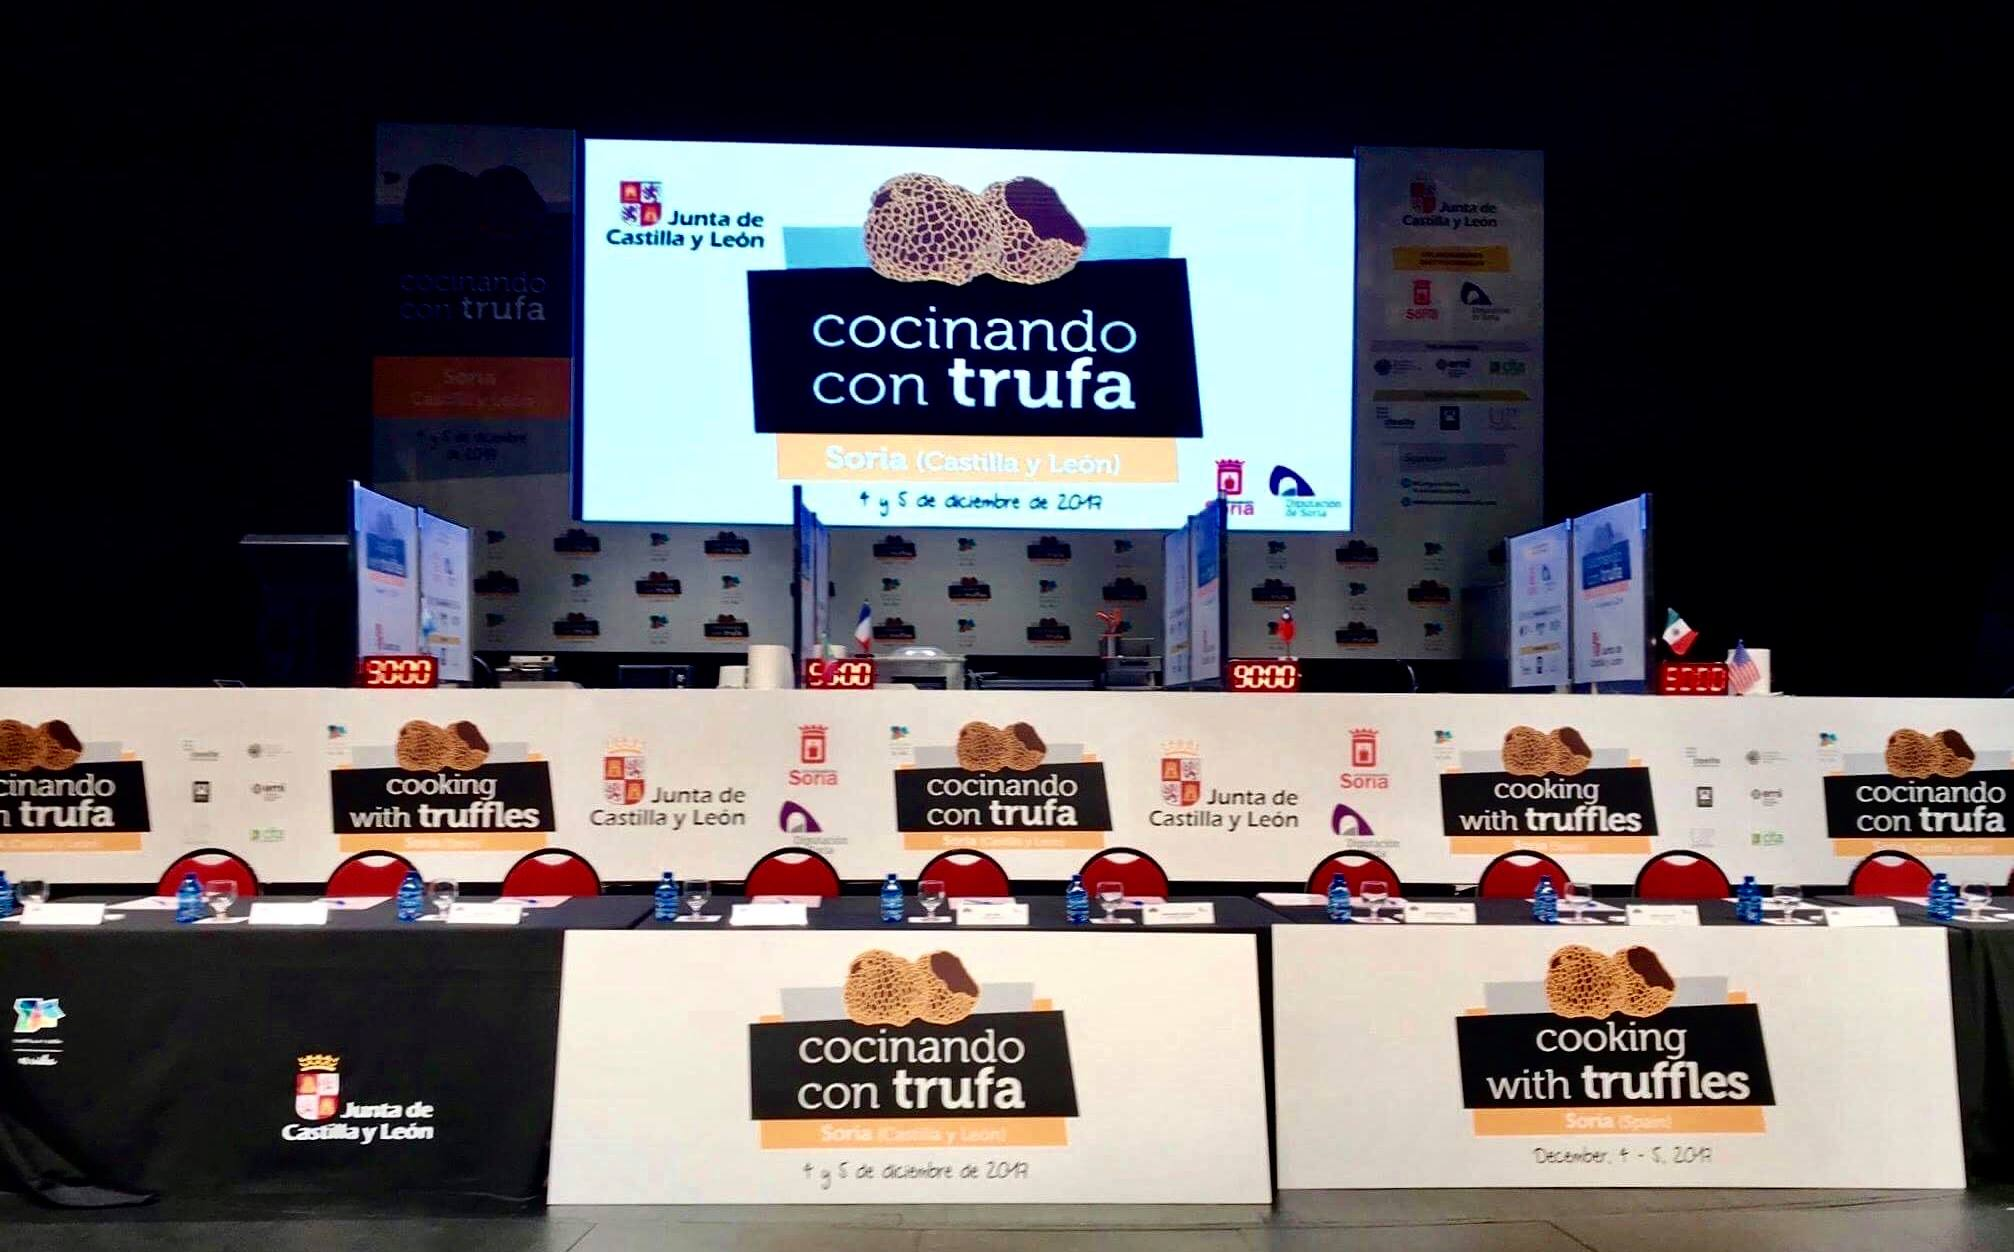 Cooking with Truffle, Chef Varin Returns to Spain to Compete